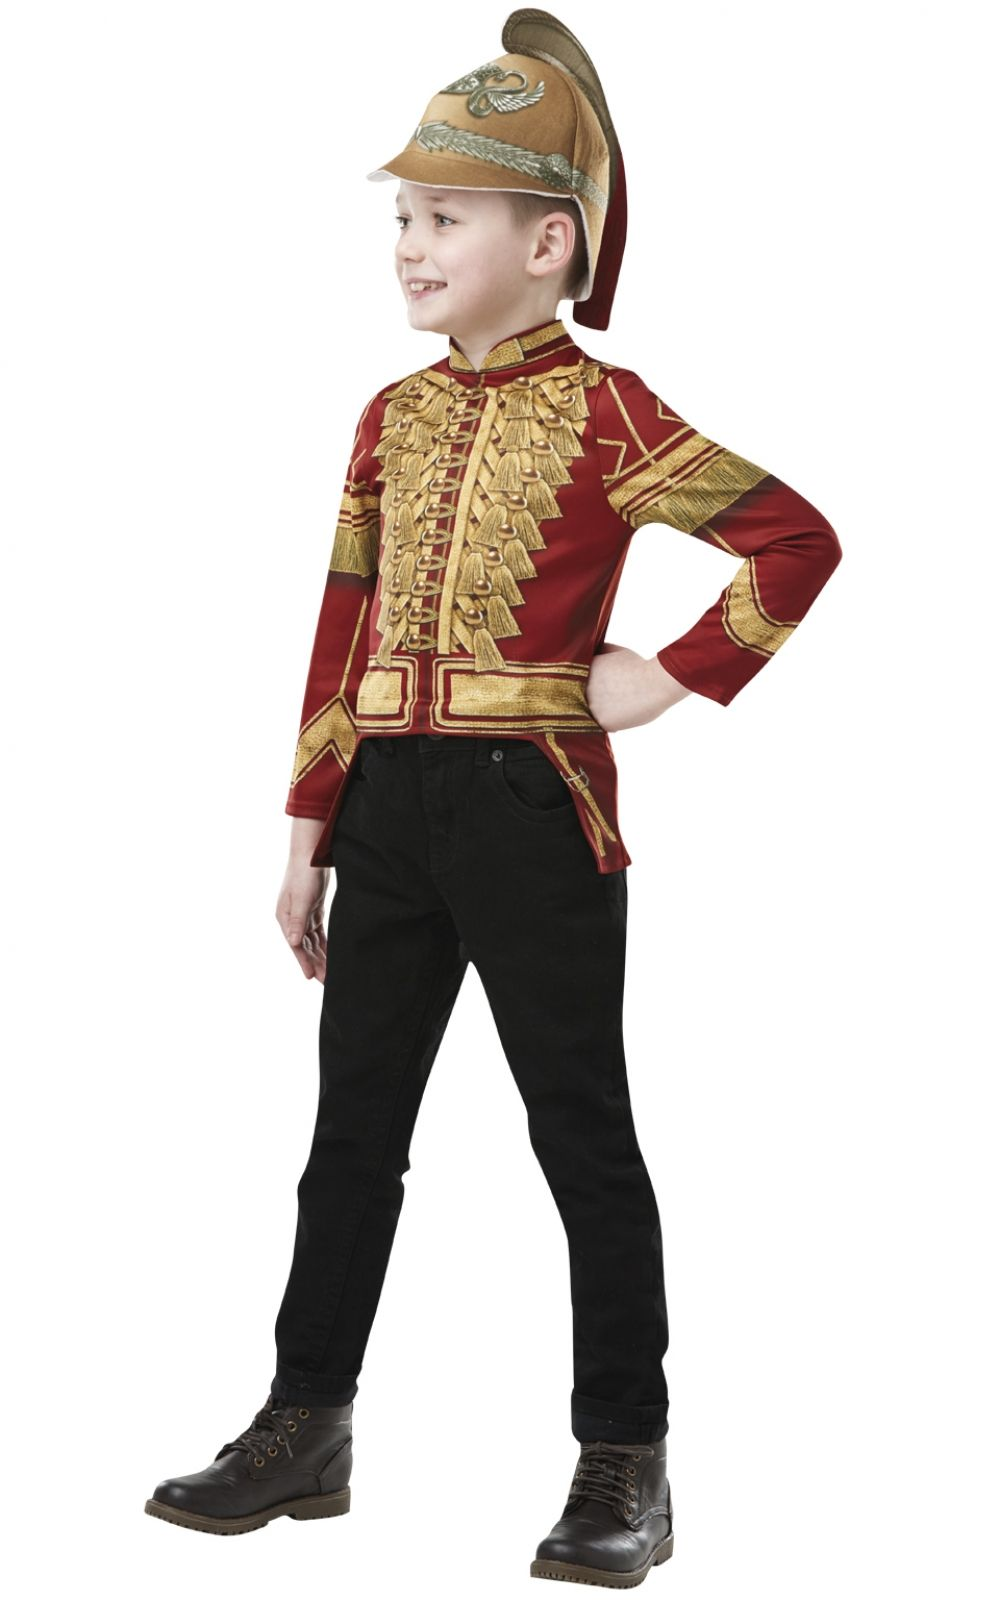 Prince Philip - The Nutcracker and the Four Realms